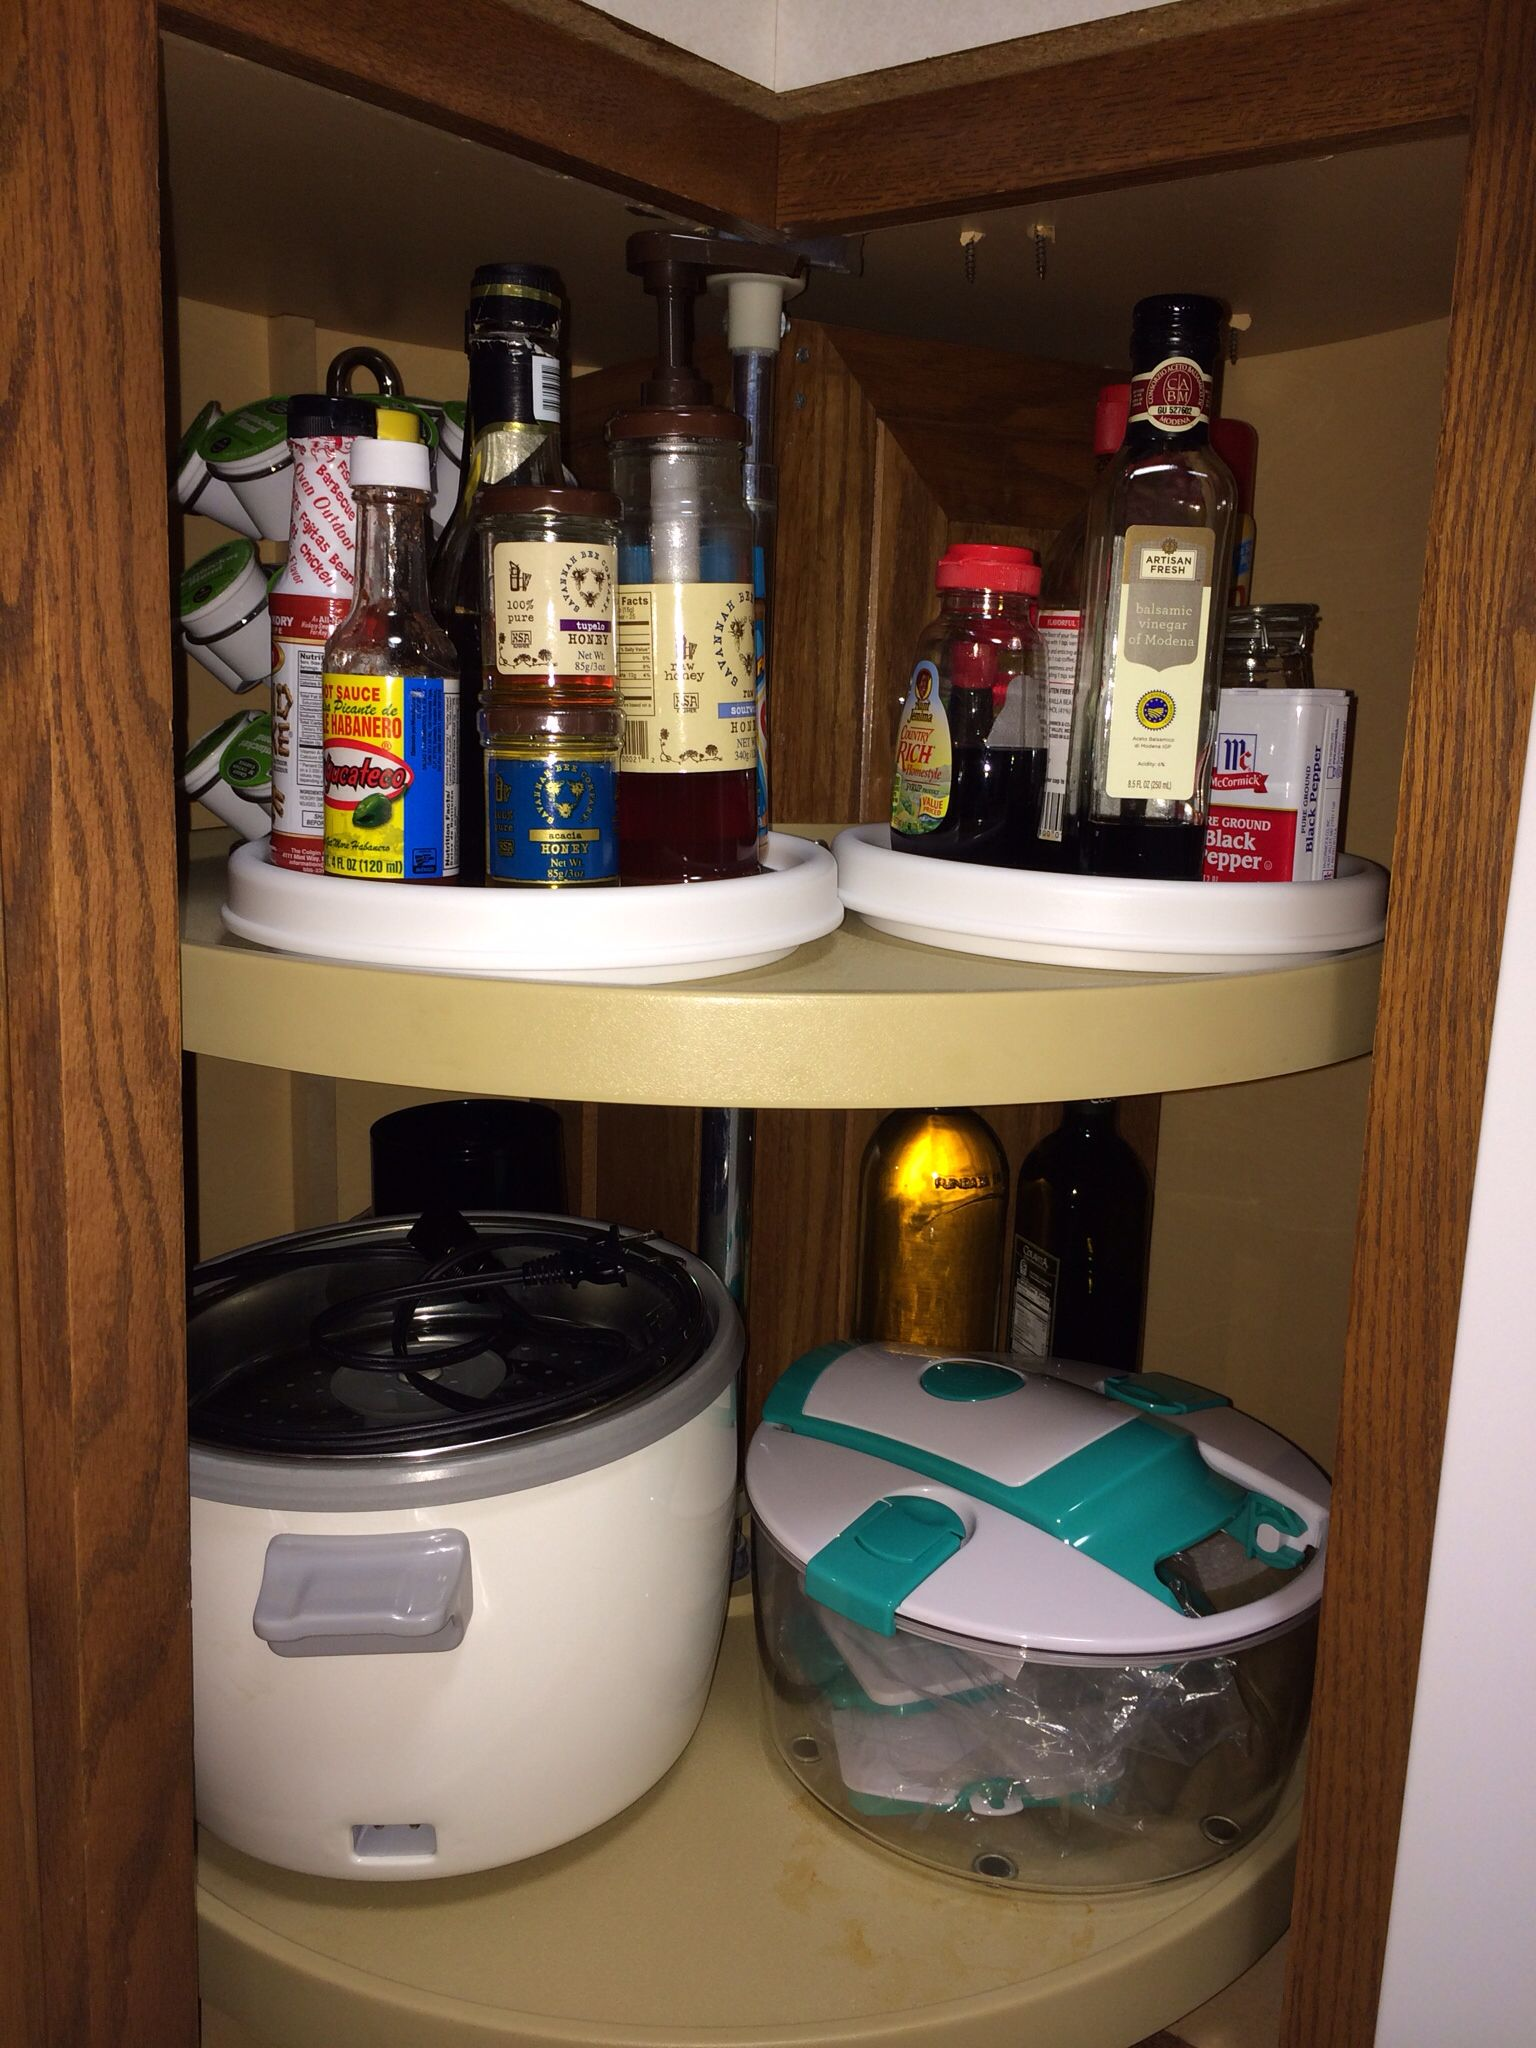 Corner Lazy Susan Turntable Kitchen Cabinet At My House We Call It The Super Susan We Added 2 9 Copco Turntables Lazy Susan To Hold Everyday Items Kuri